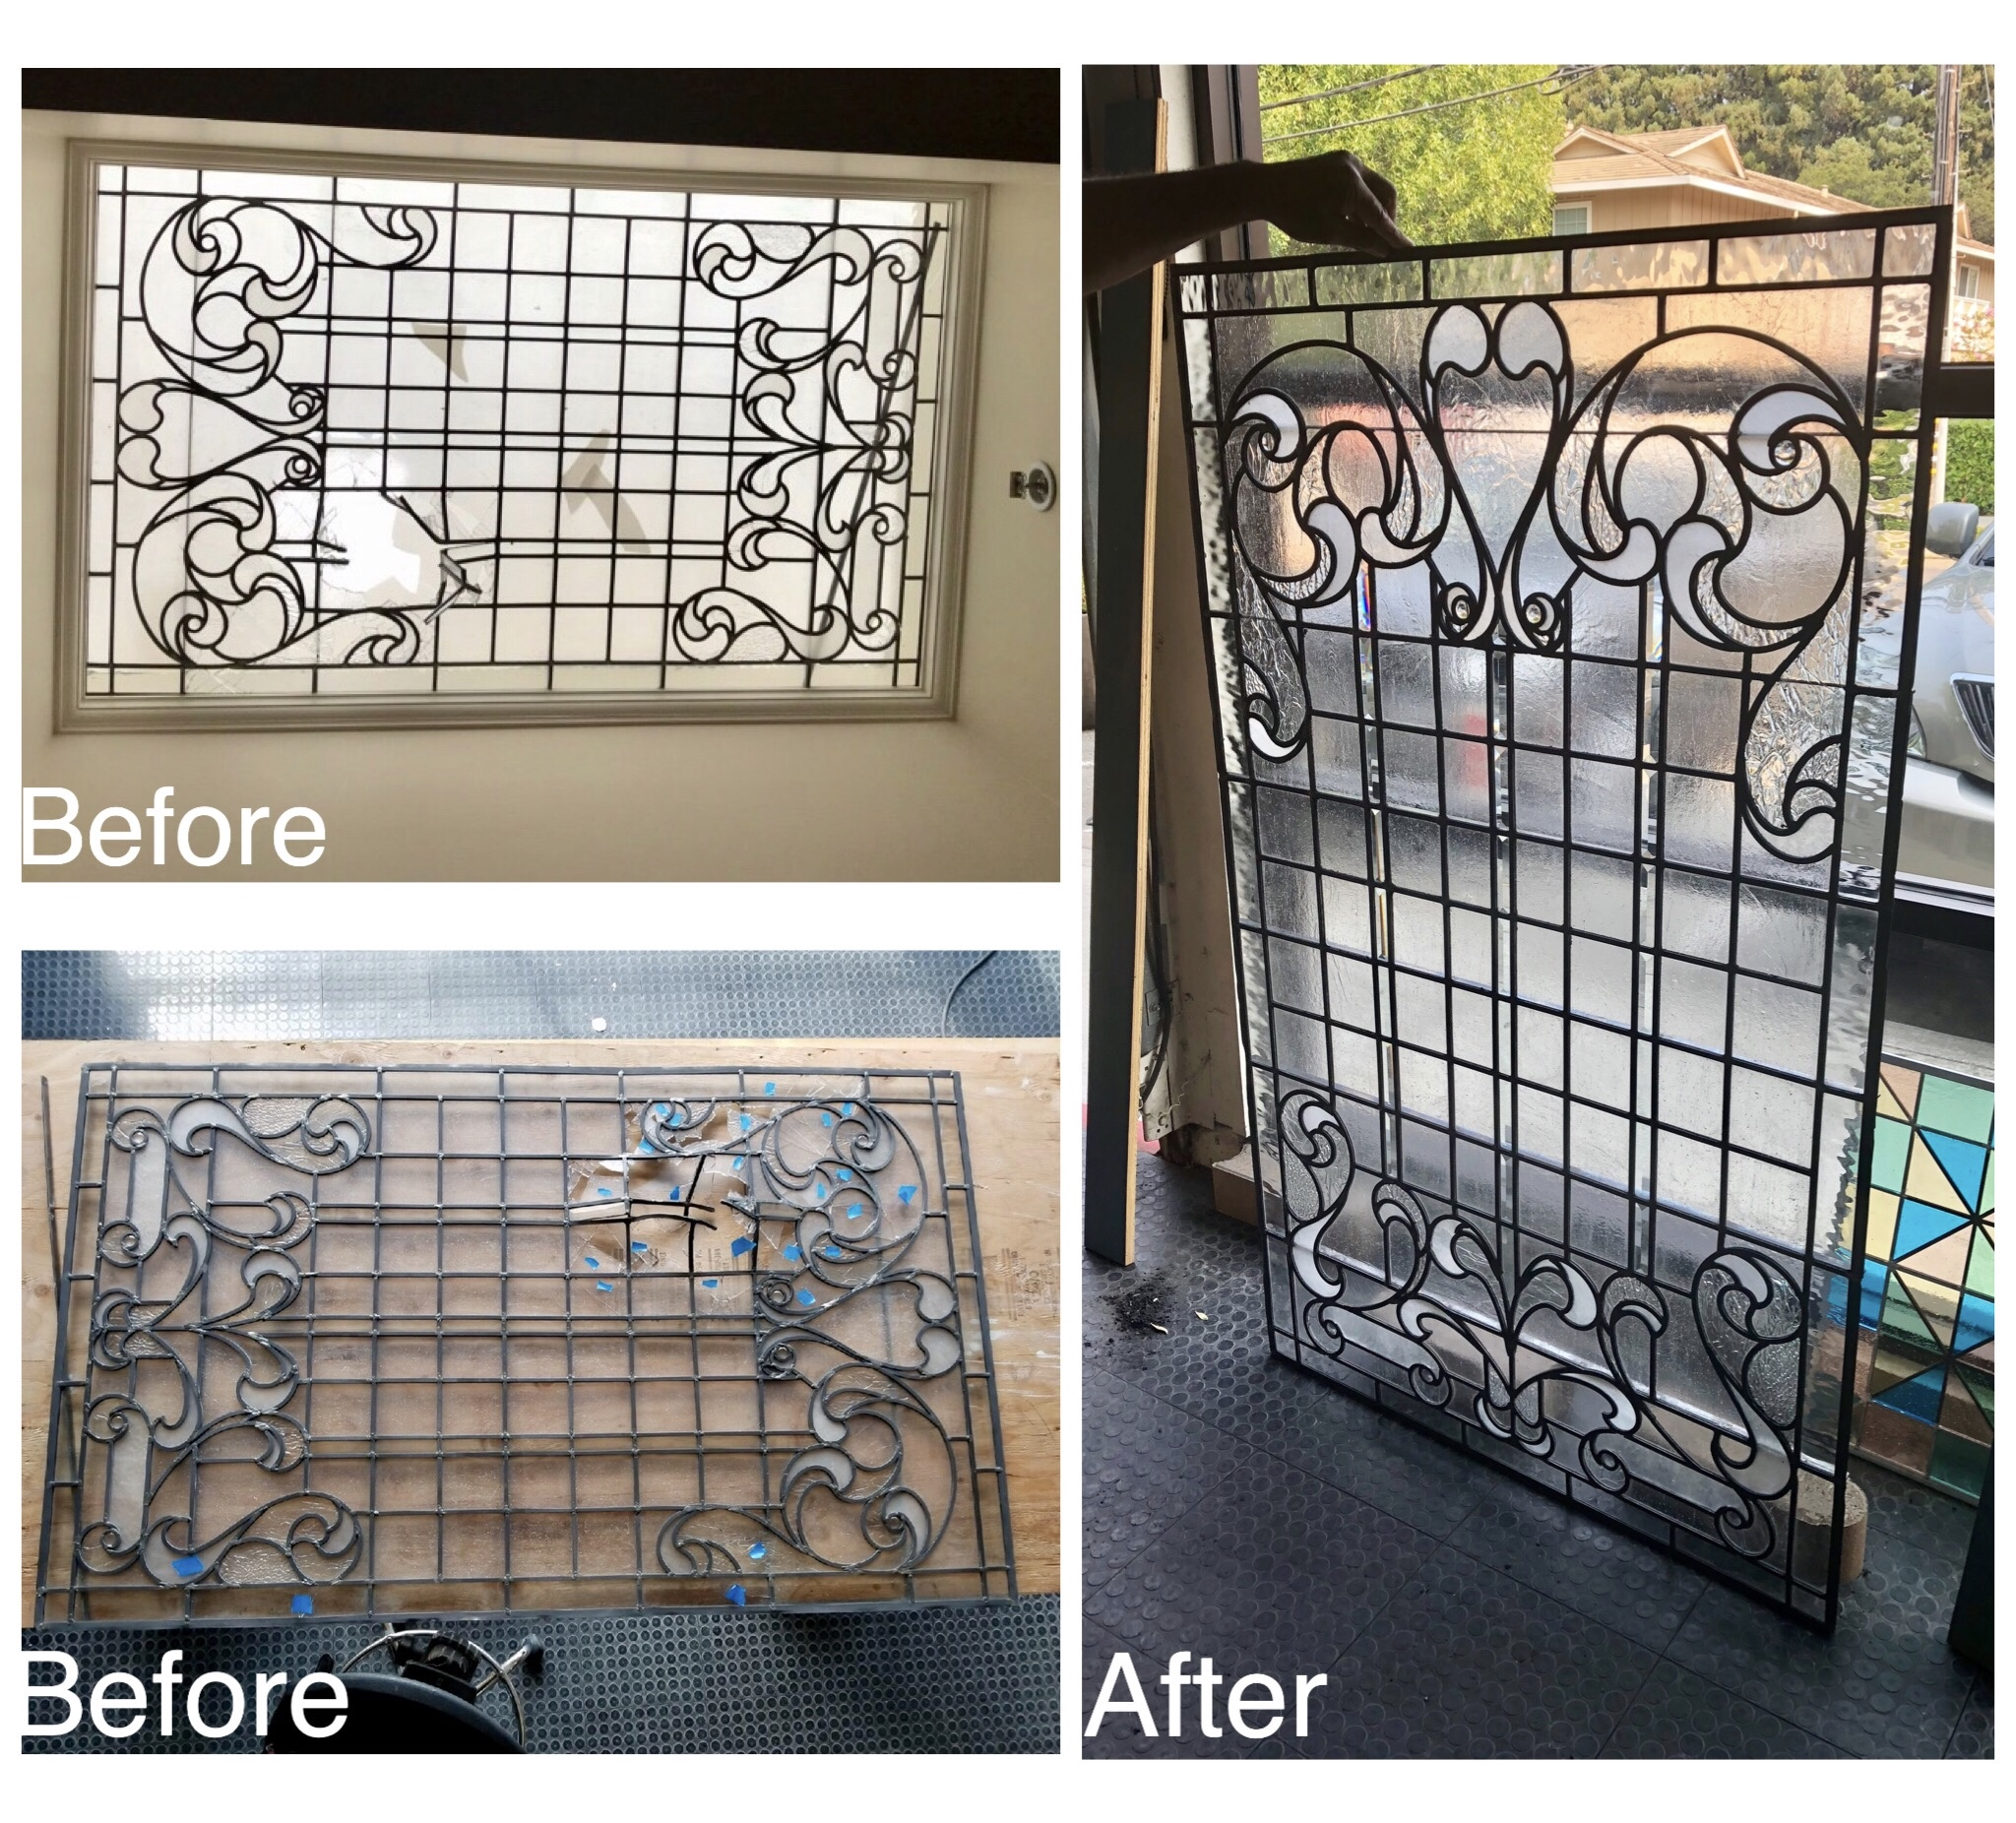 custom stained leaded glass repair skylight before and after legacy glass studios california art nouveau design.jpg